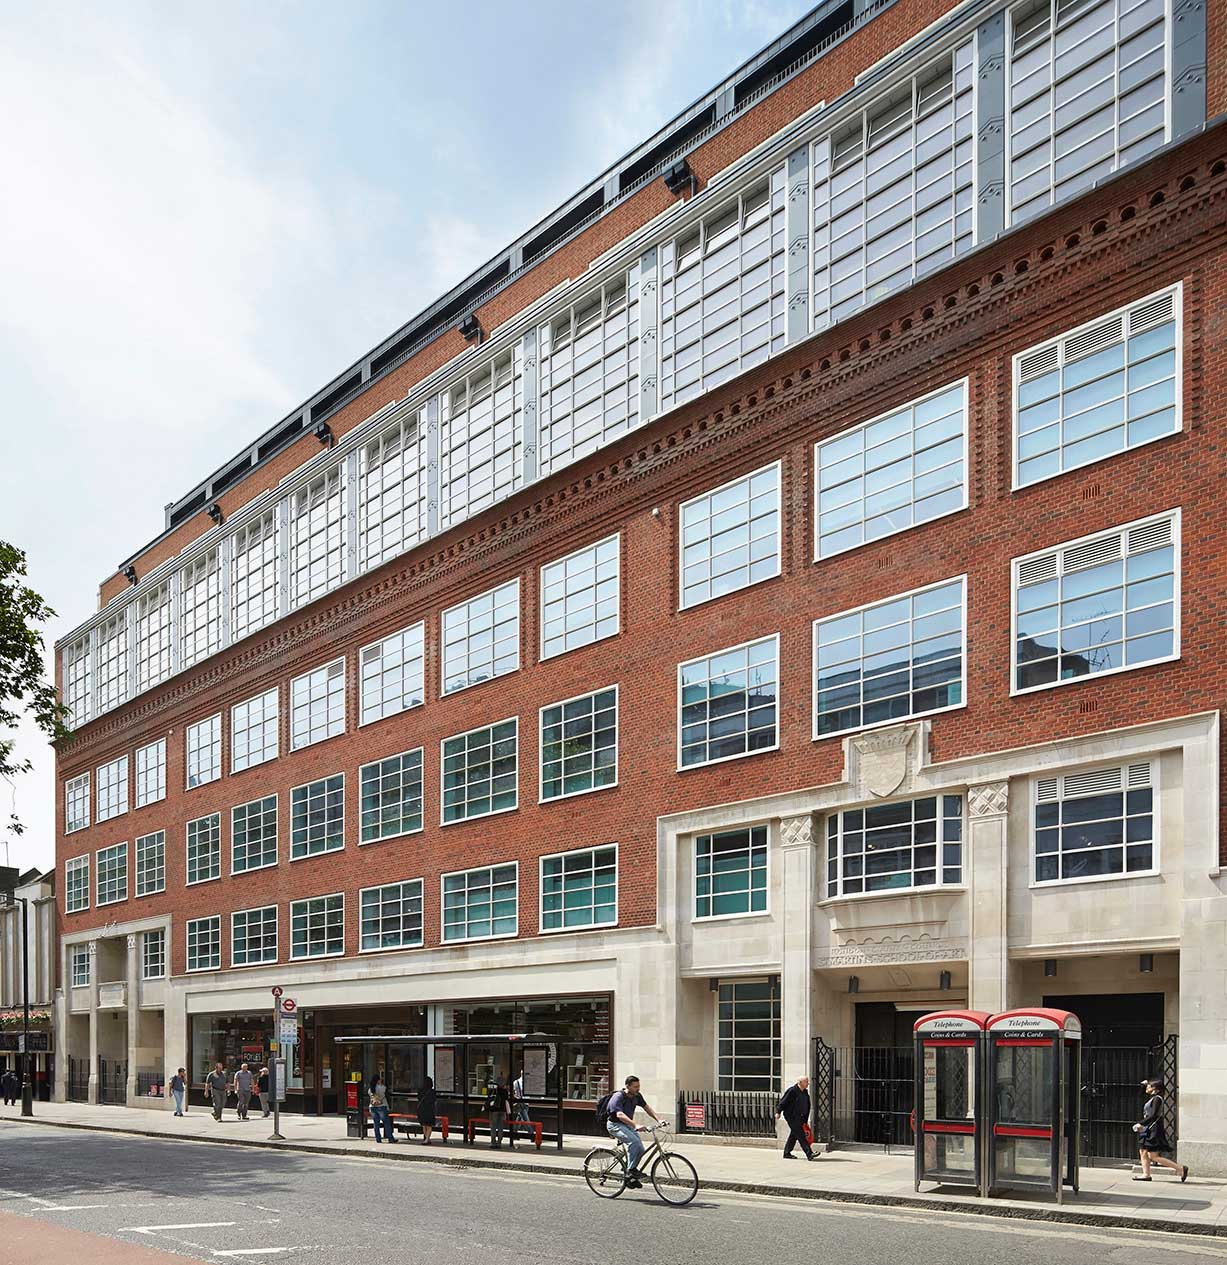 Former St Martin's School of Art, now Foyles Bookshop, Charing Cross Road, London. Architects London Country Council (Chief Architect E. P. Wheeler), 1939. Converted by Liftschutz Davidson Sandilands, 2014. Out of step with the smoothness of Modernism, and yet far from an exercise in historical style, this building is one of the most original pieces of work to come out of the LCC Architects in their neglected inter-war years. It seems to carry forward the ambitions of W. R. Lethaby, the theorist who at the turn of the century hoped that modern architecture could grow out of the past rather than requiring a dramatic rupture with it. Lethaby hated overdone elevations, but this one shows an adaptation to the internal purposes combined with decorative flair and good craftsmanship.